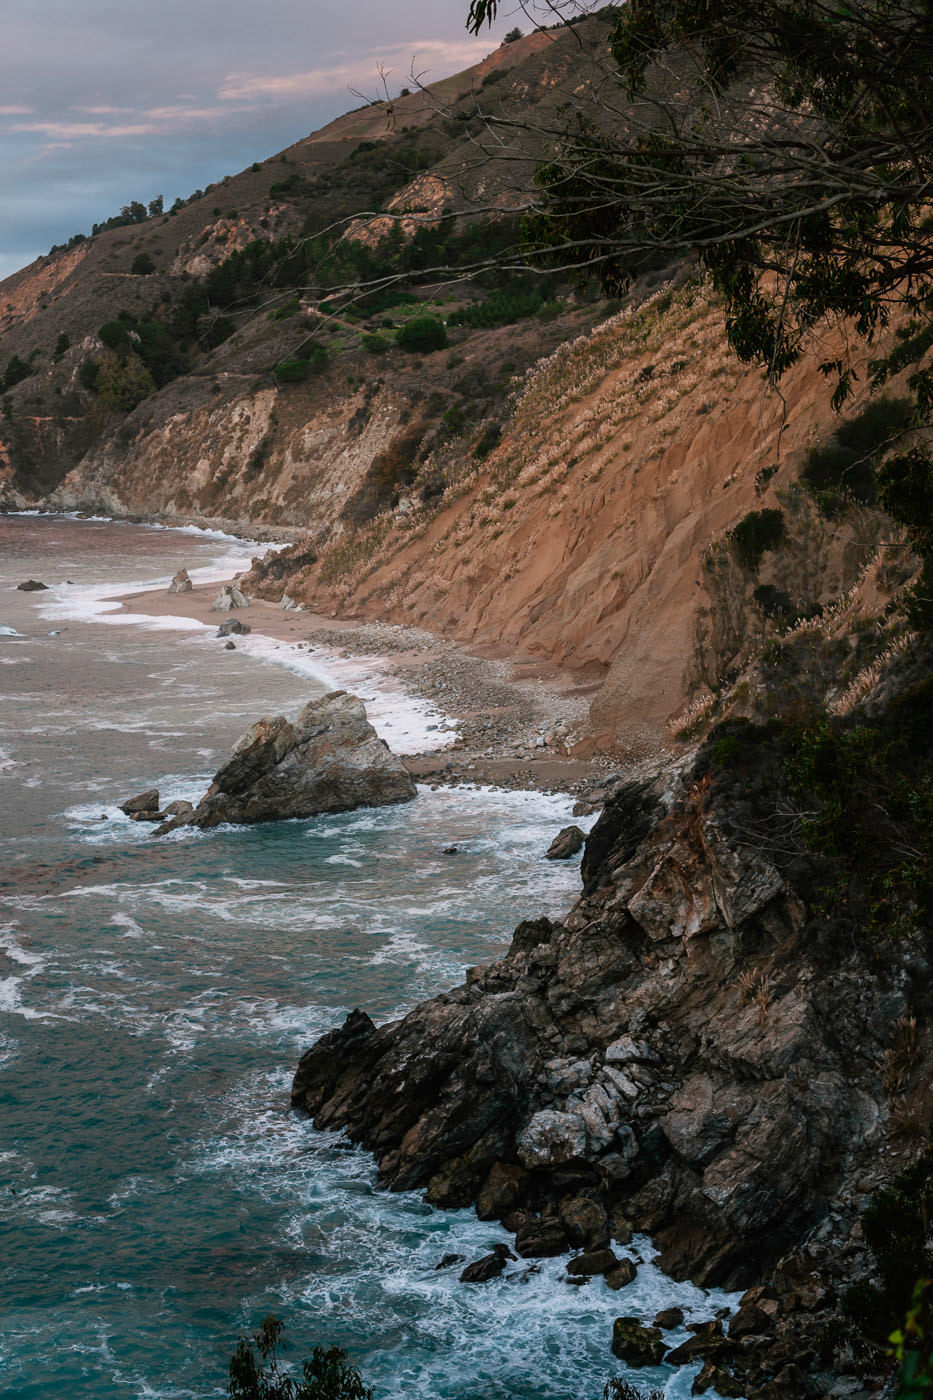 The waves break on the rugged coastline of Big Sur's Mcway waterfall area.